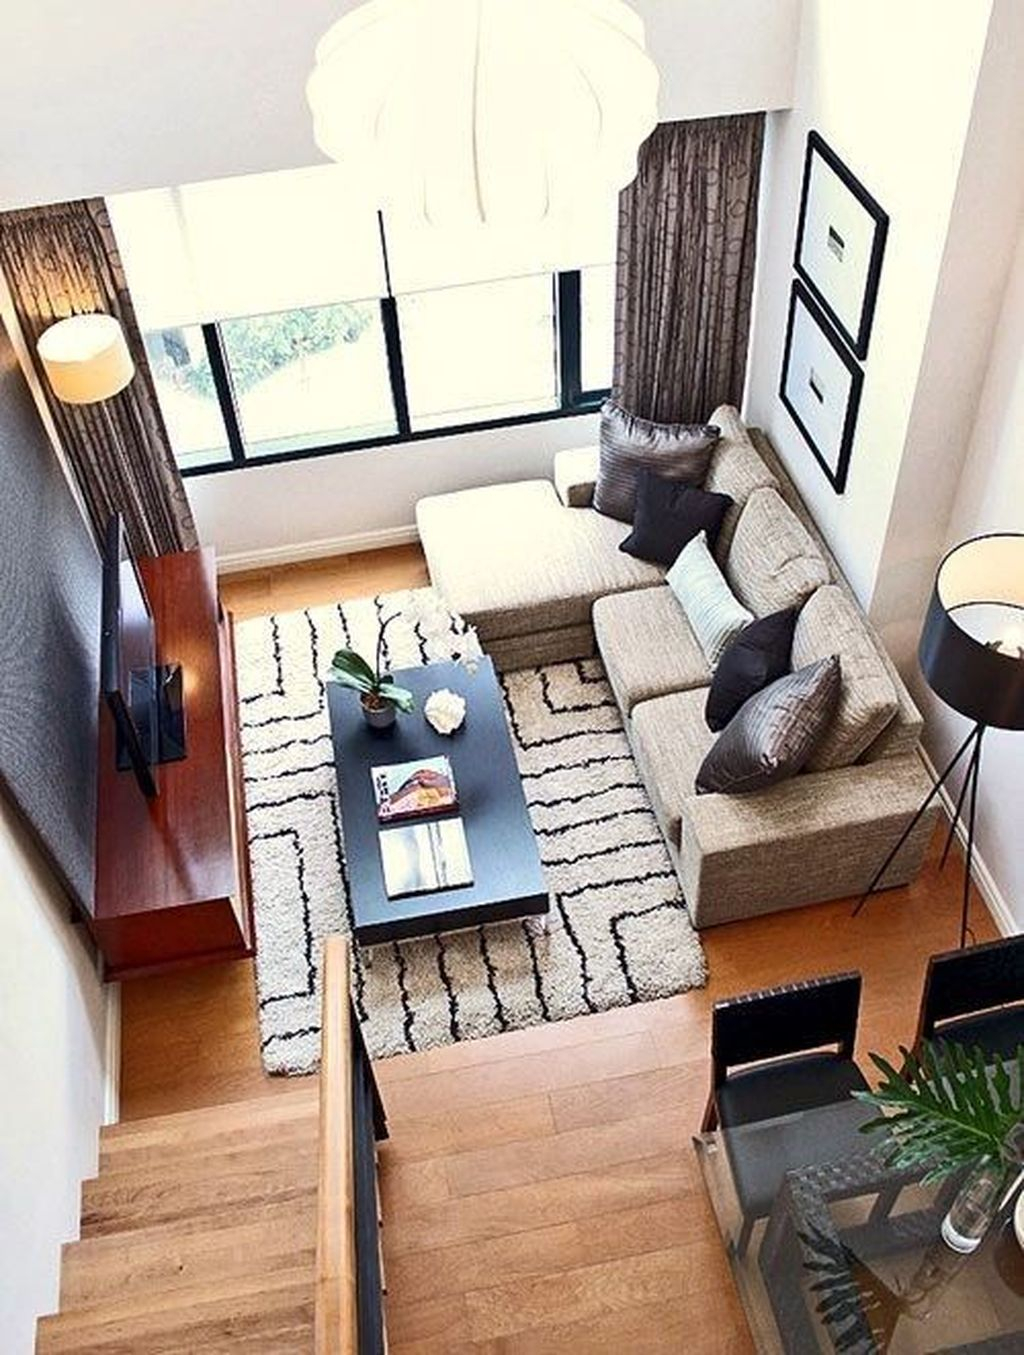 Best Tiny Living Room Design Ideas That Trend Nowaday 35